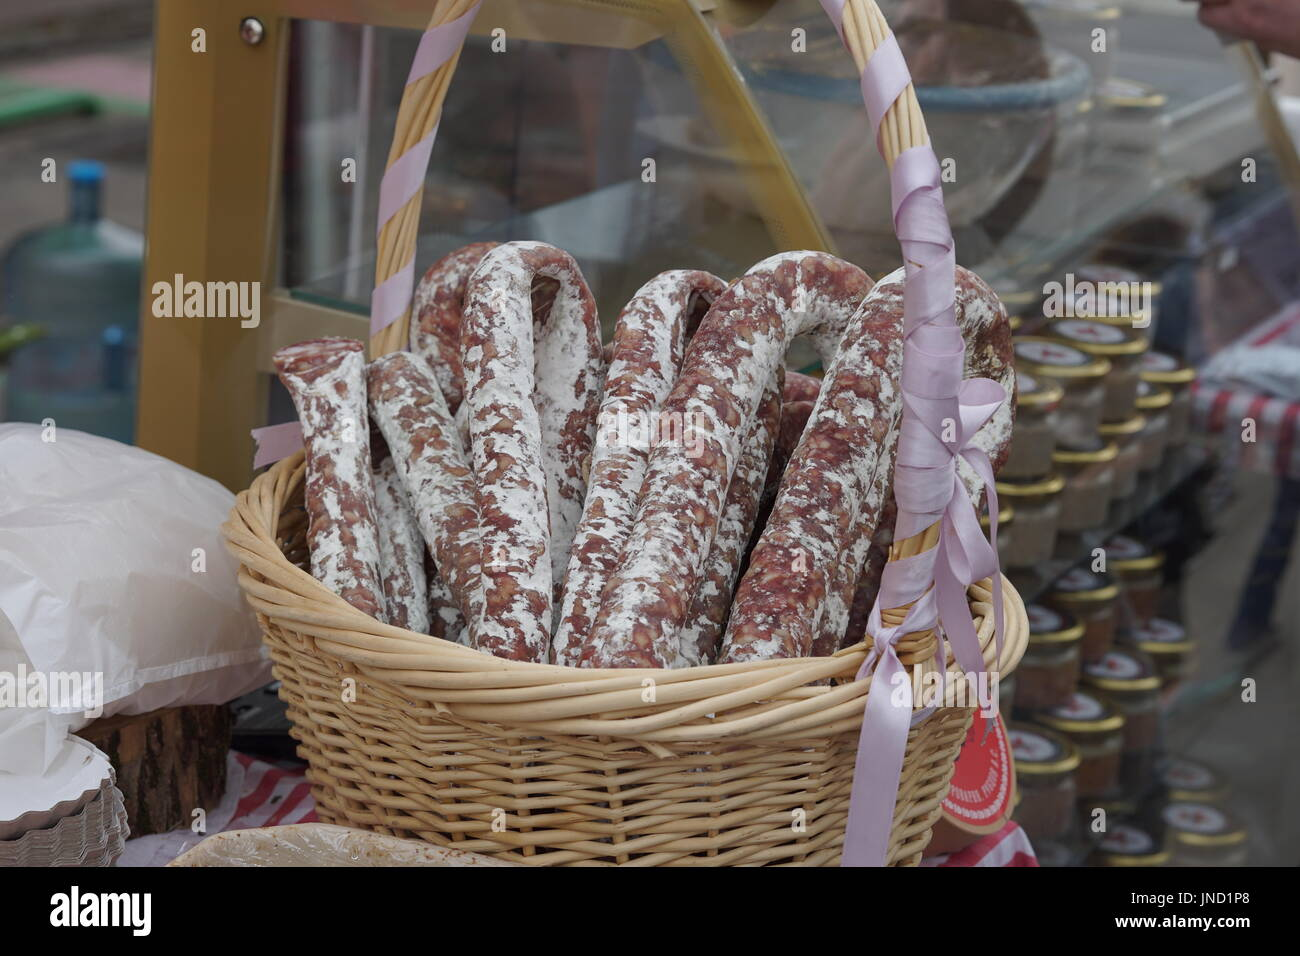 Wicker basket of italian sausage - traditional handmade organic salami in market. Gastronomic products for gourme - Stock Image